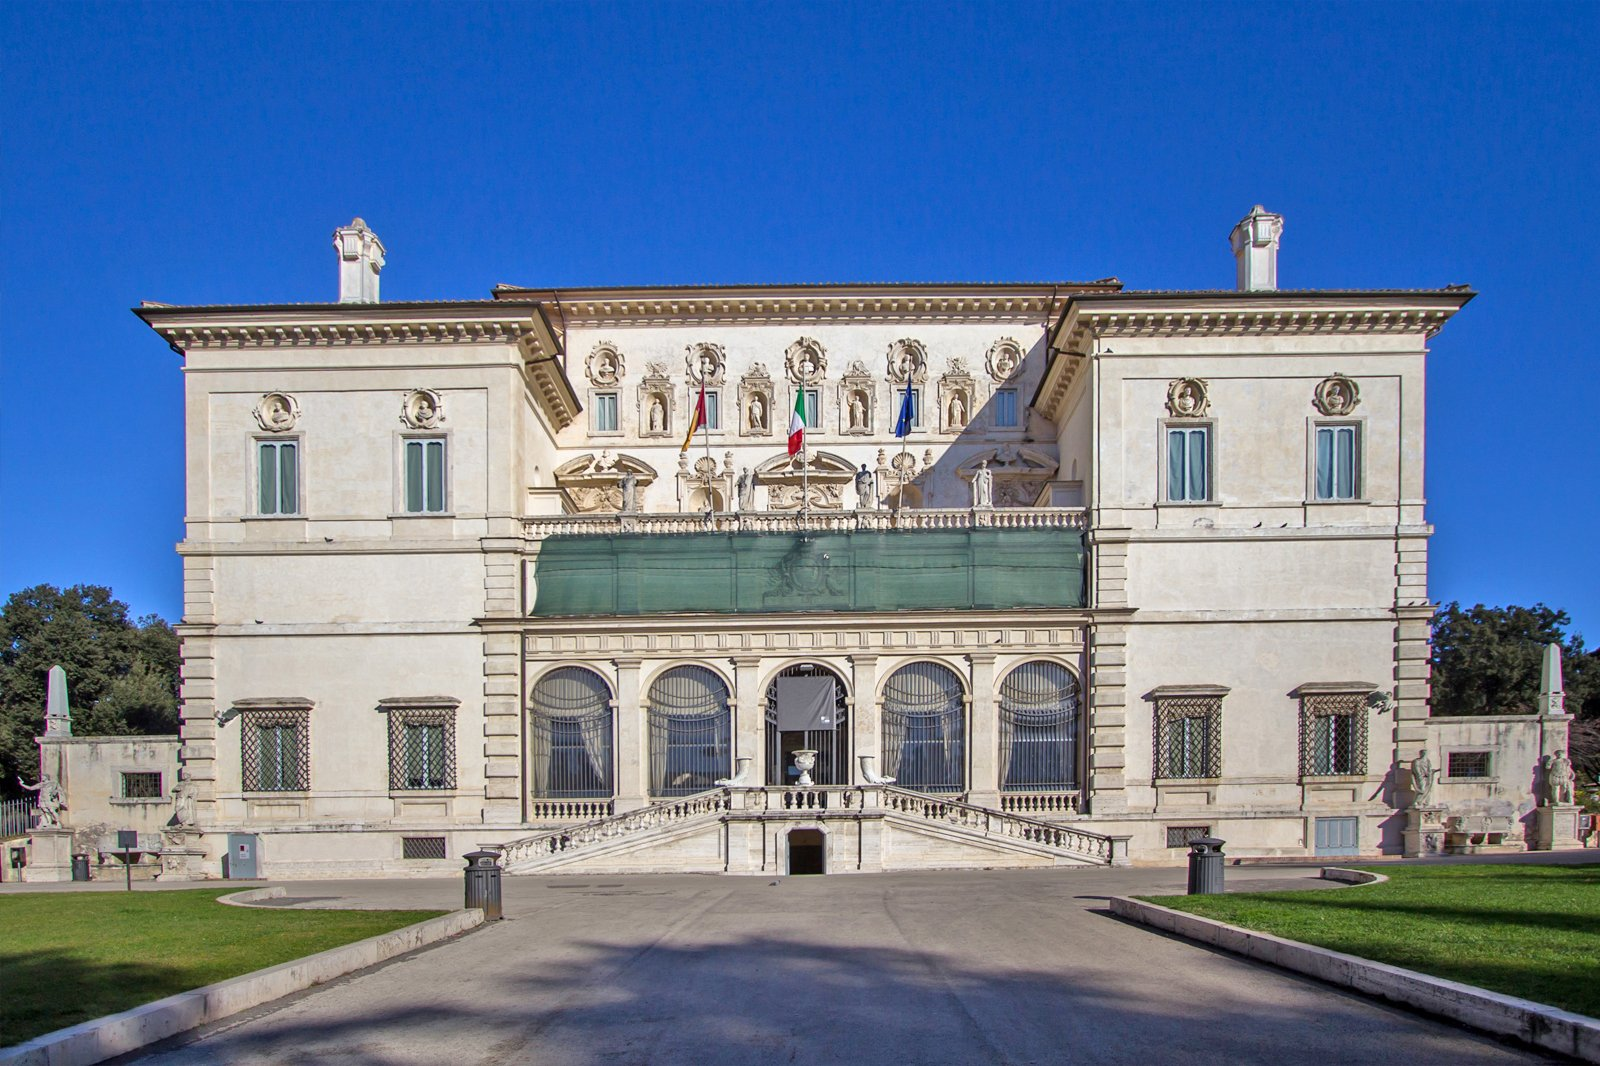 7 Incredible Art Museums in Italy - Italy's Must-See Museums